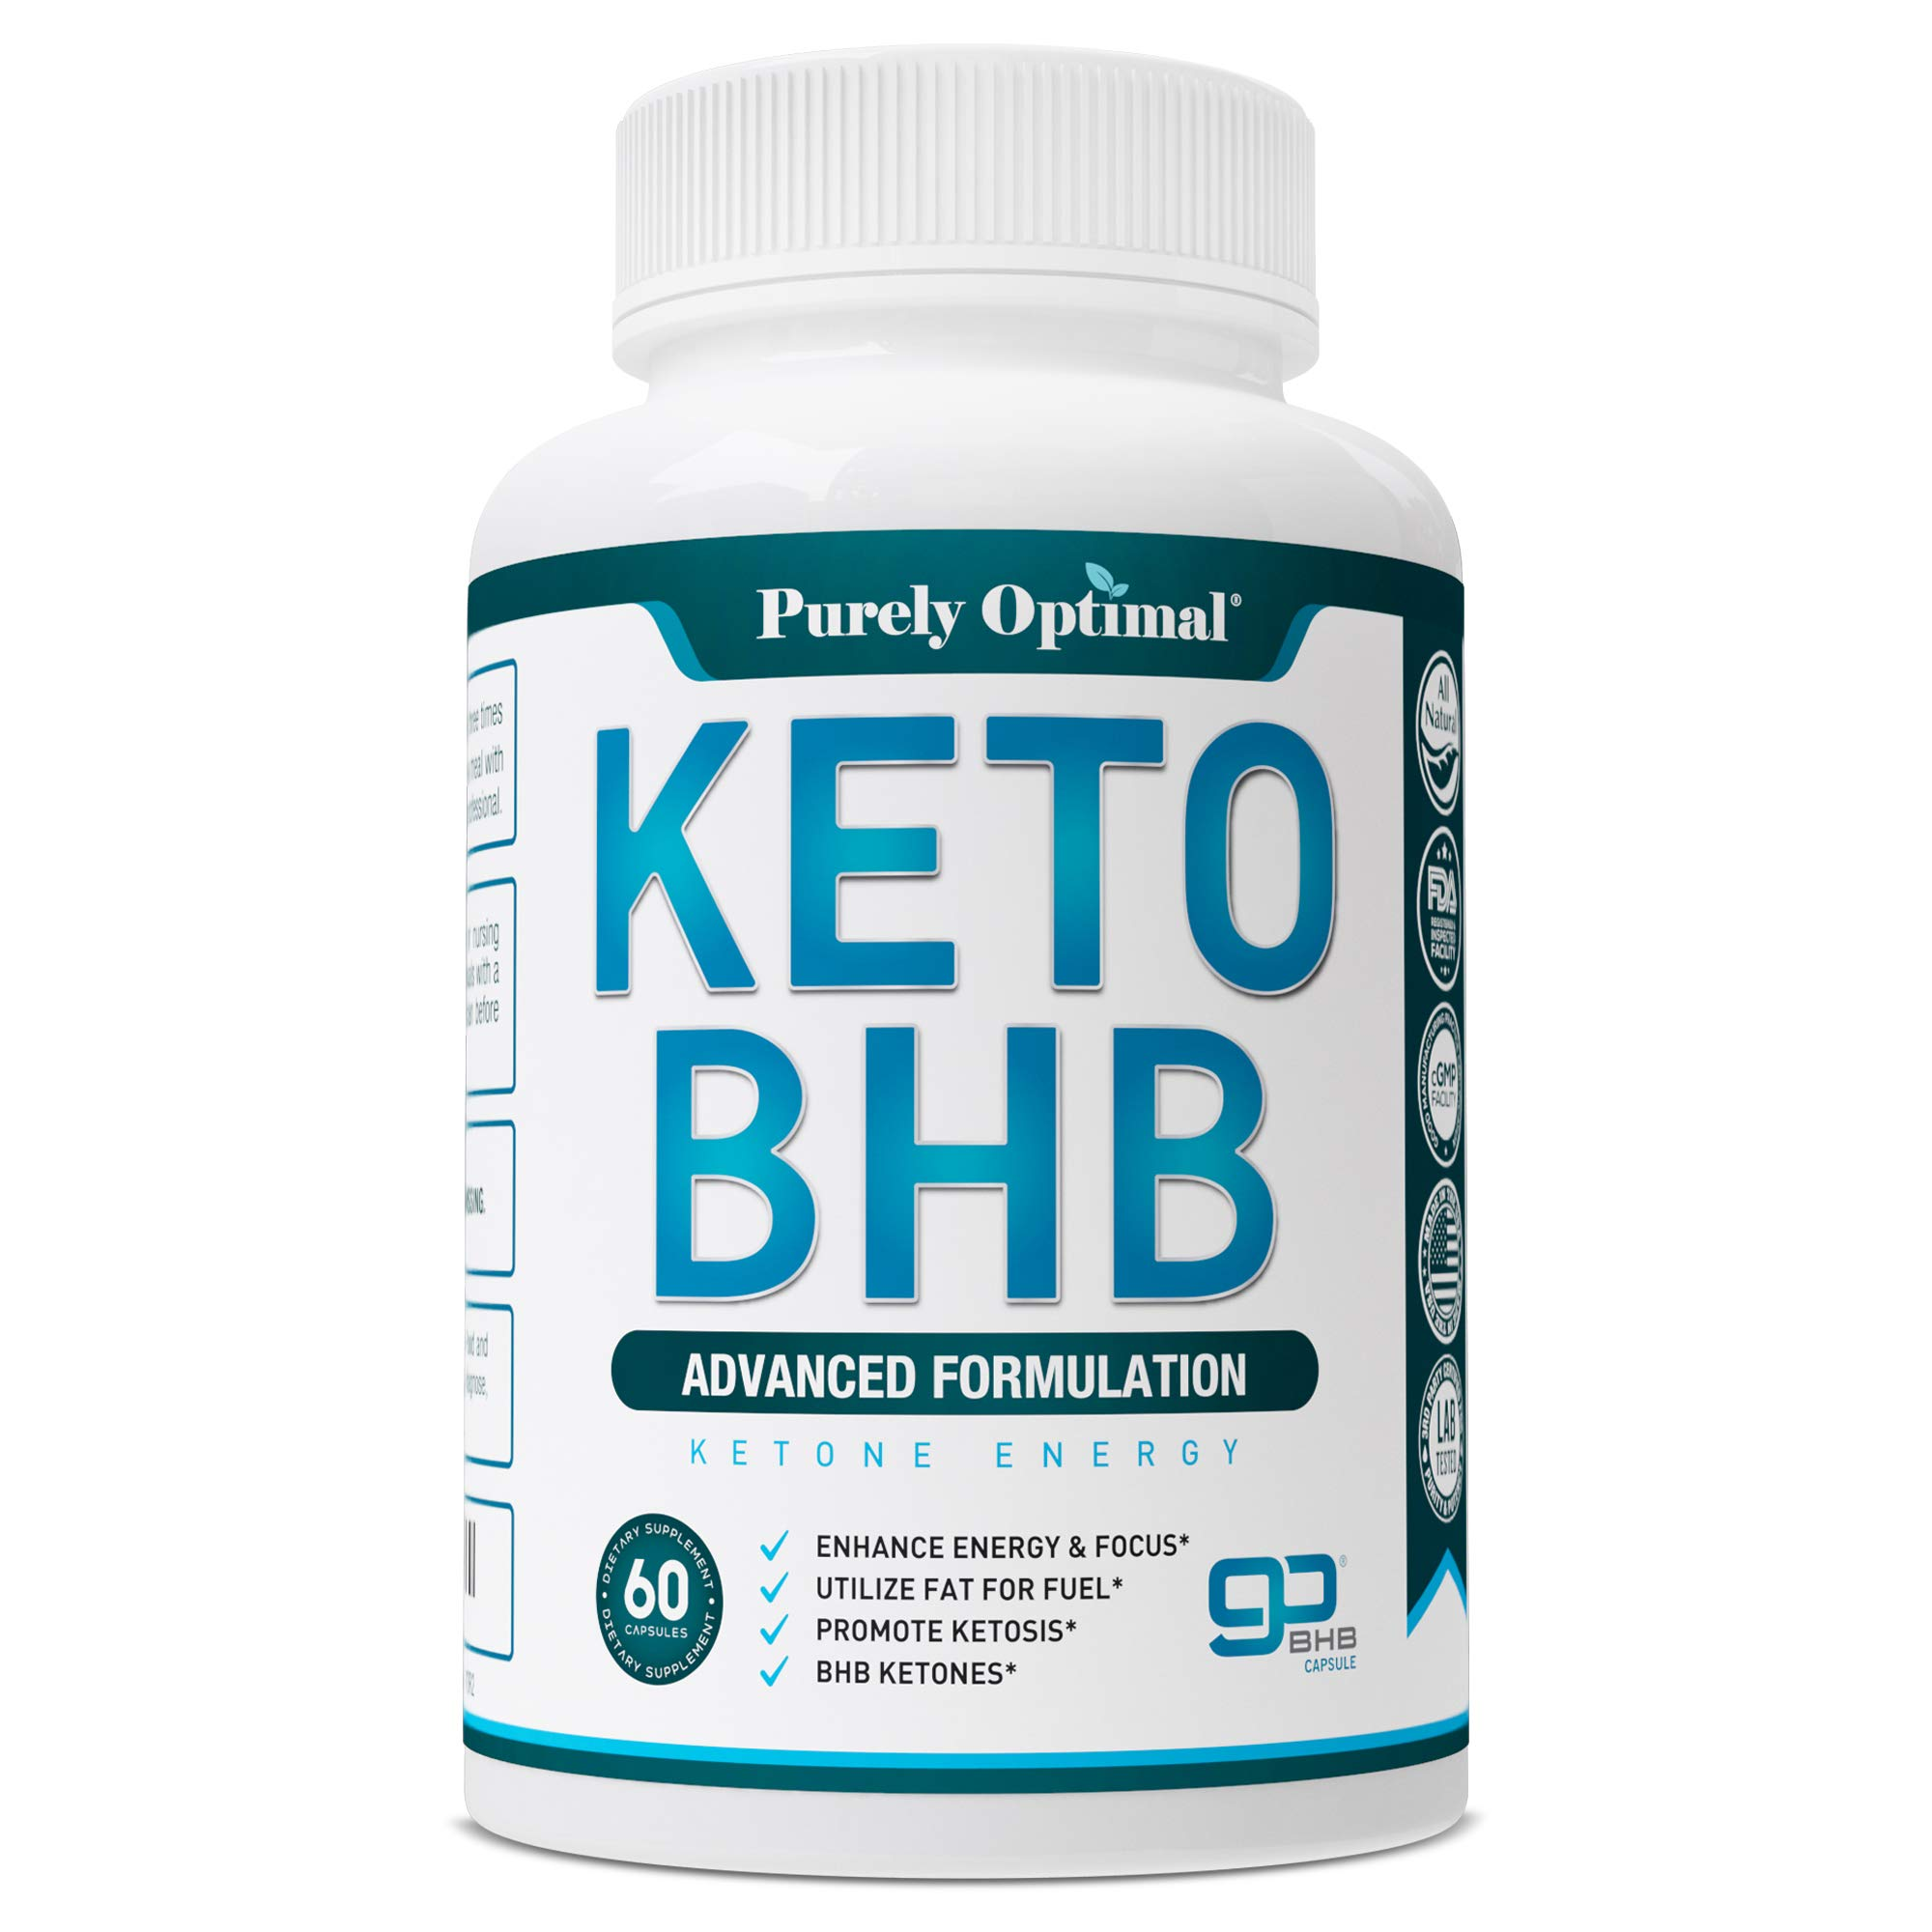 Premium Keto Diet Pills - Utilize Fat for Energy with Ketosis - Boost Energy & Focus, Manage Cravings, Support Metabolism - Keto BHB Supplement for Women and Men - 30 Day Supply by PURELY OPTIMAL